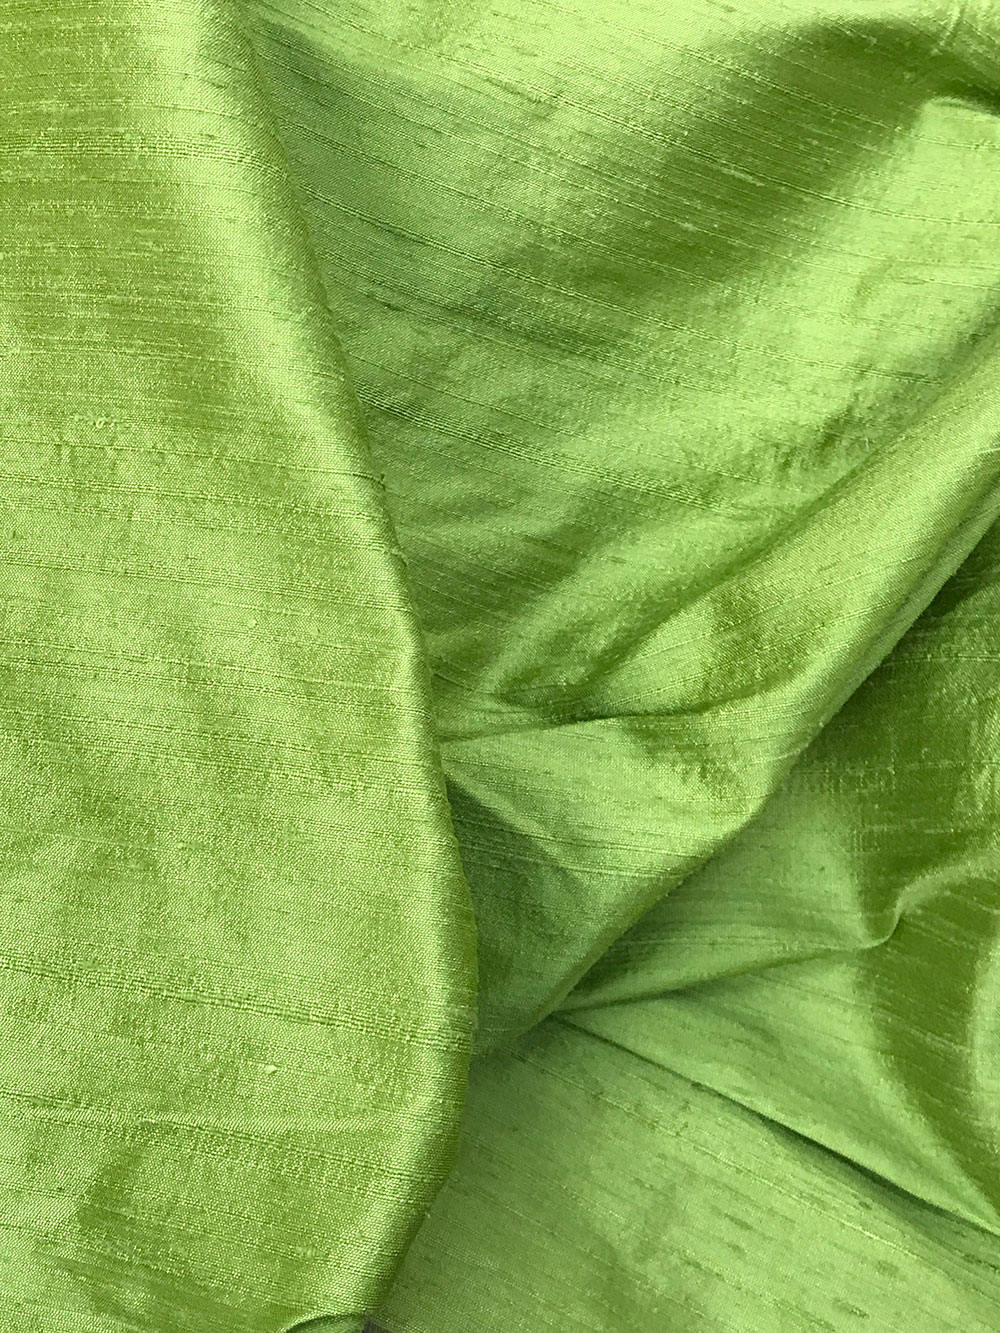 100/% Pure Dupioni Silk Hand Loomed Fabric From India Sell By Yard Off White